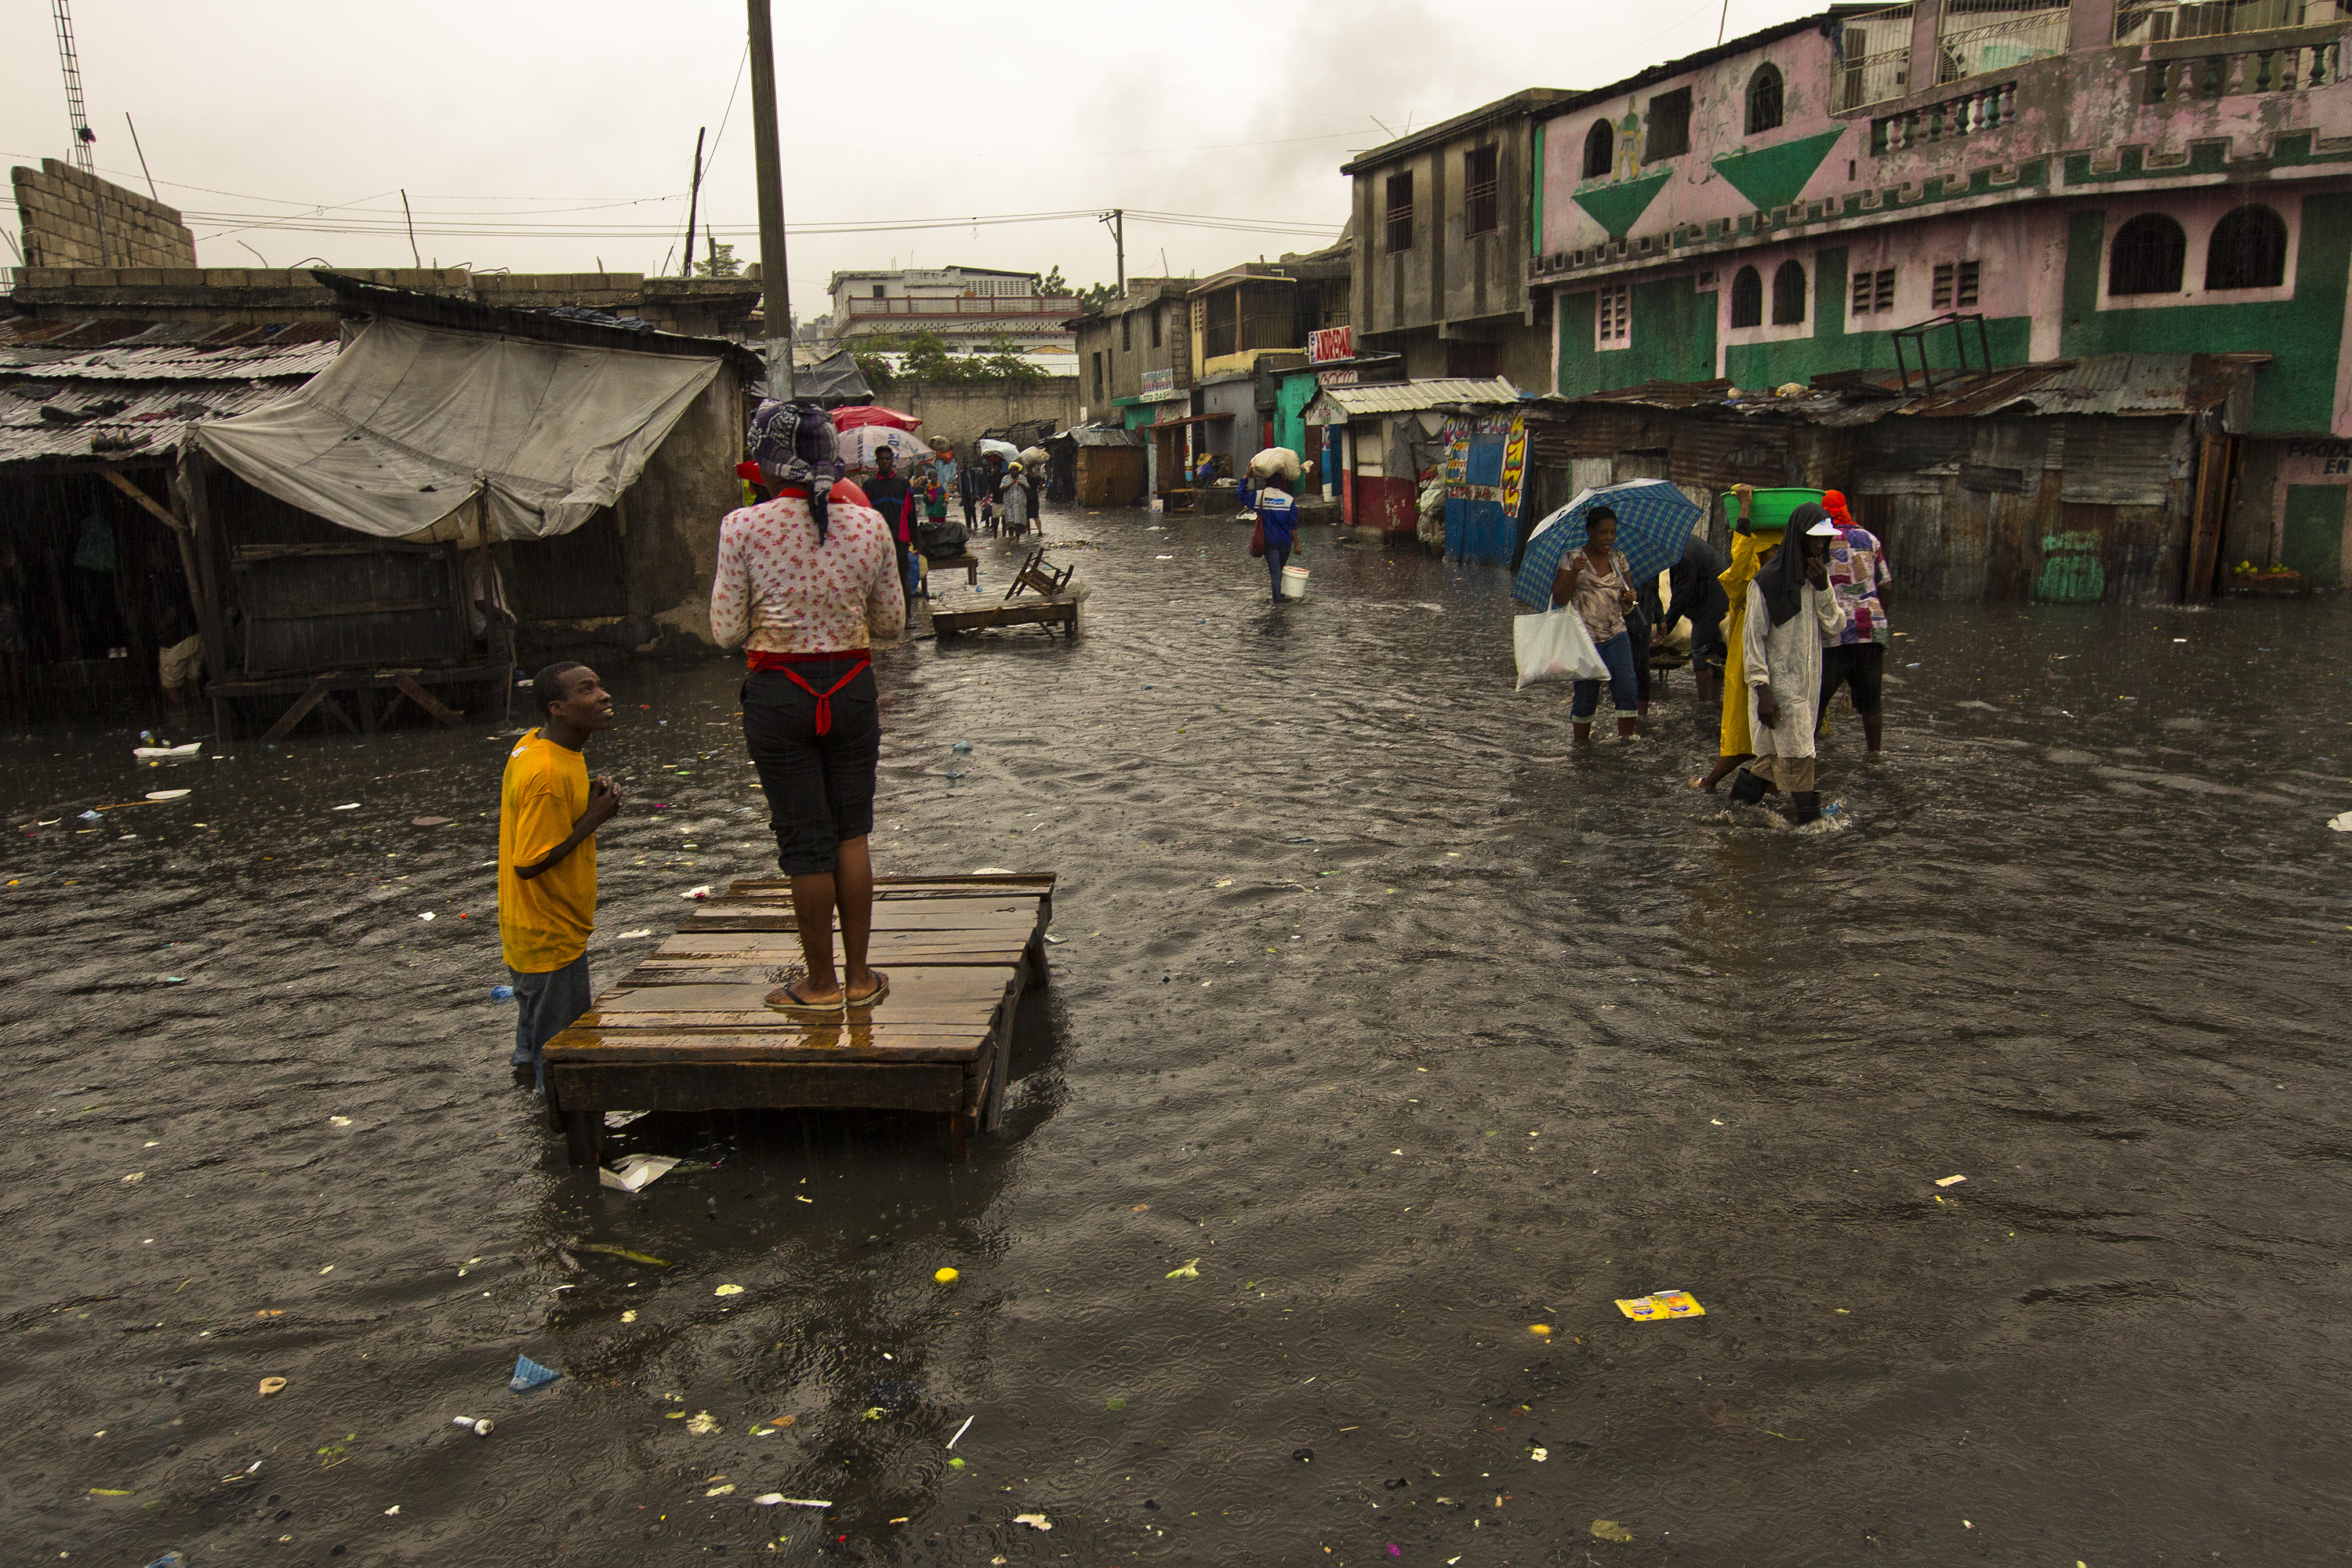 Resilience, suffering and silver linings after a disaster